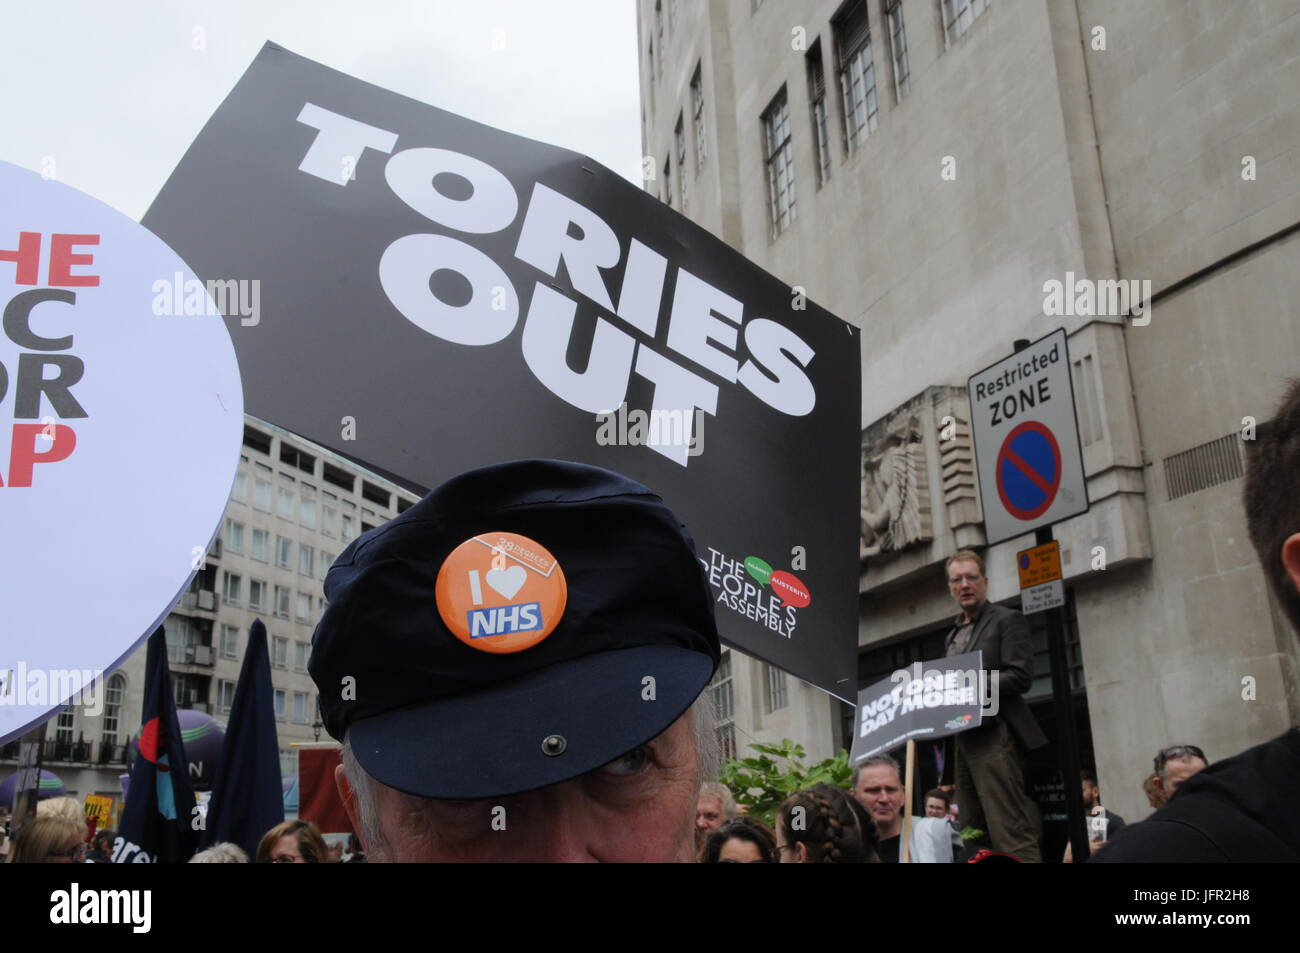 Supporters of the NHS join John McDonnell's Anti-Tory March in London. Stock Photo